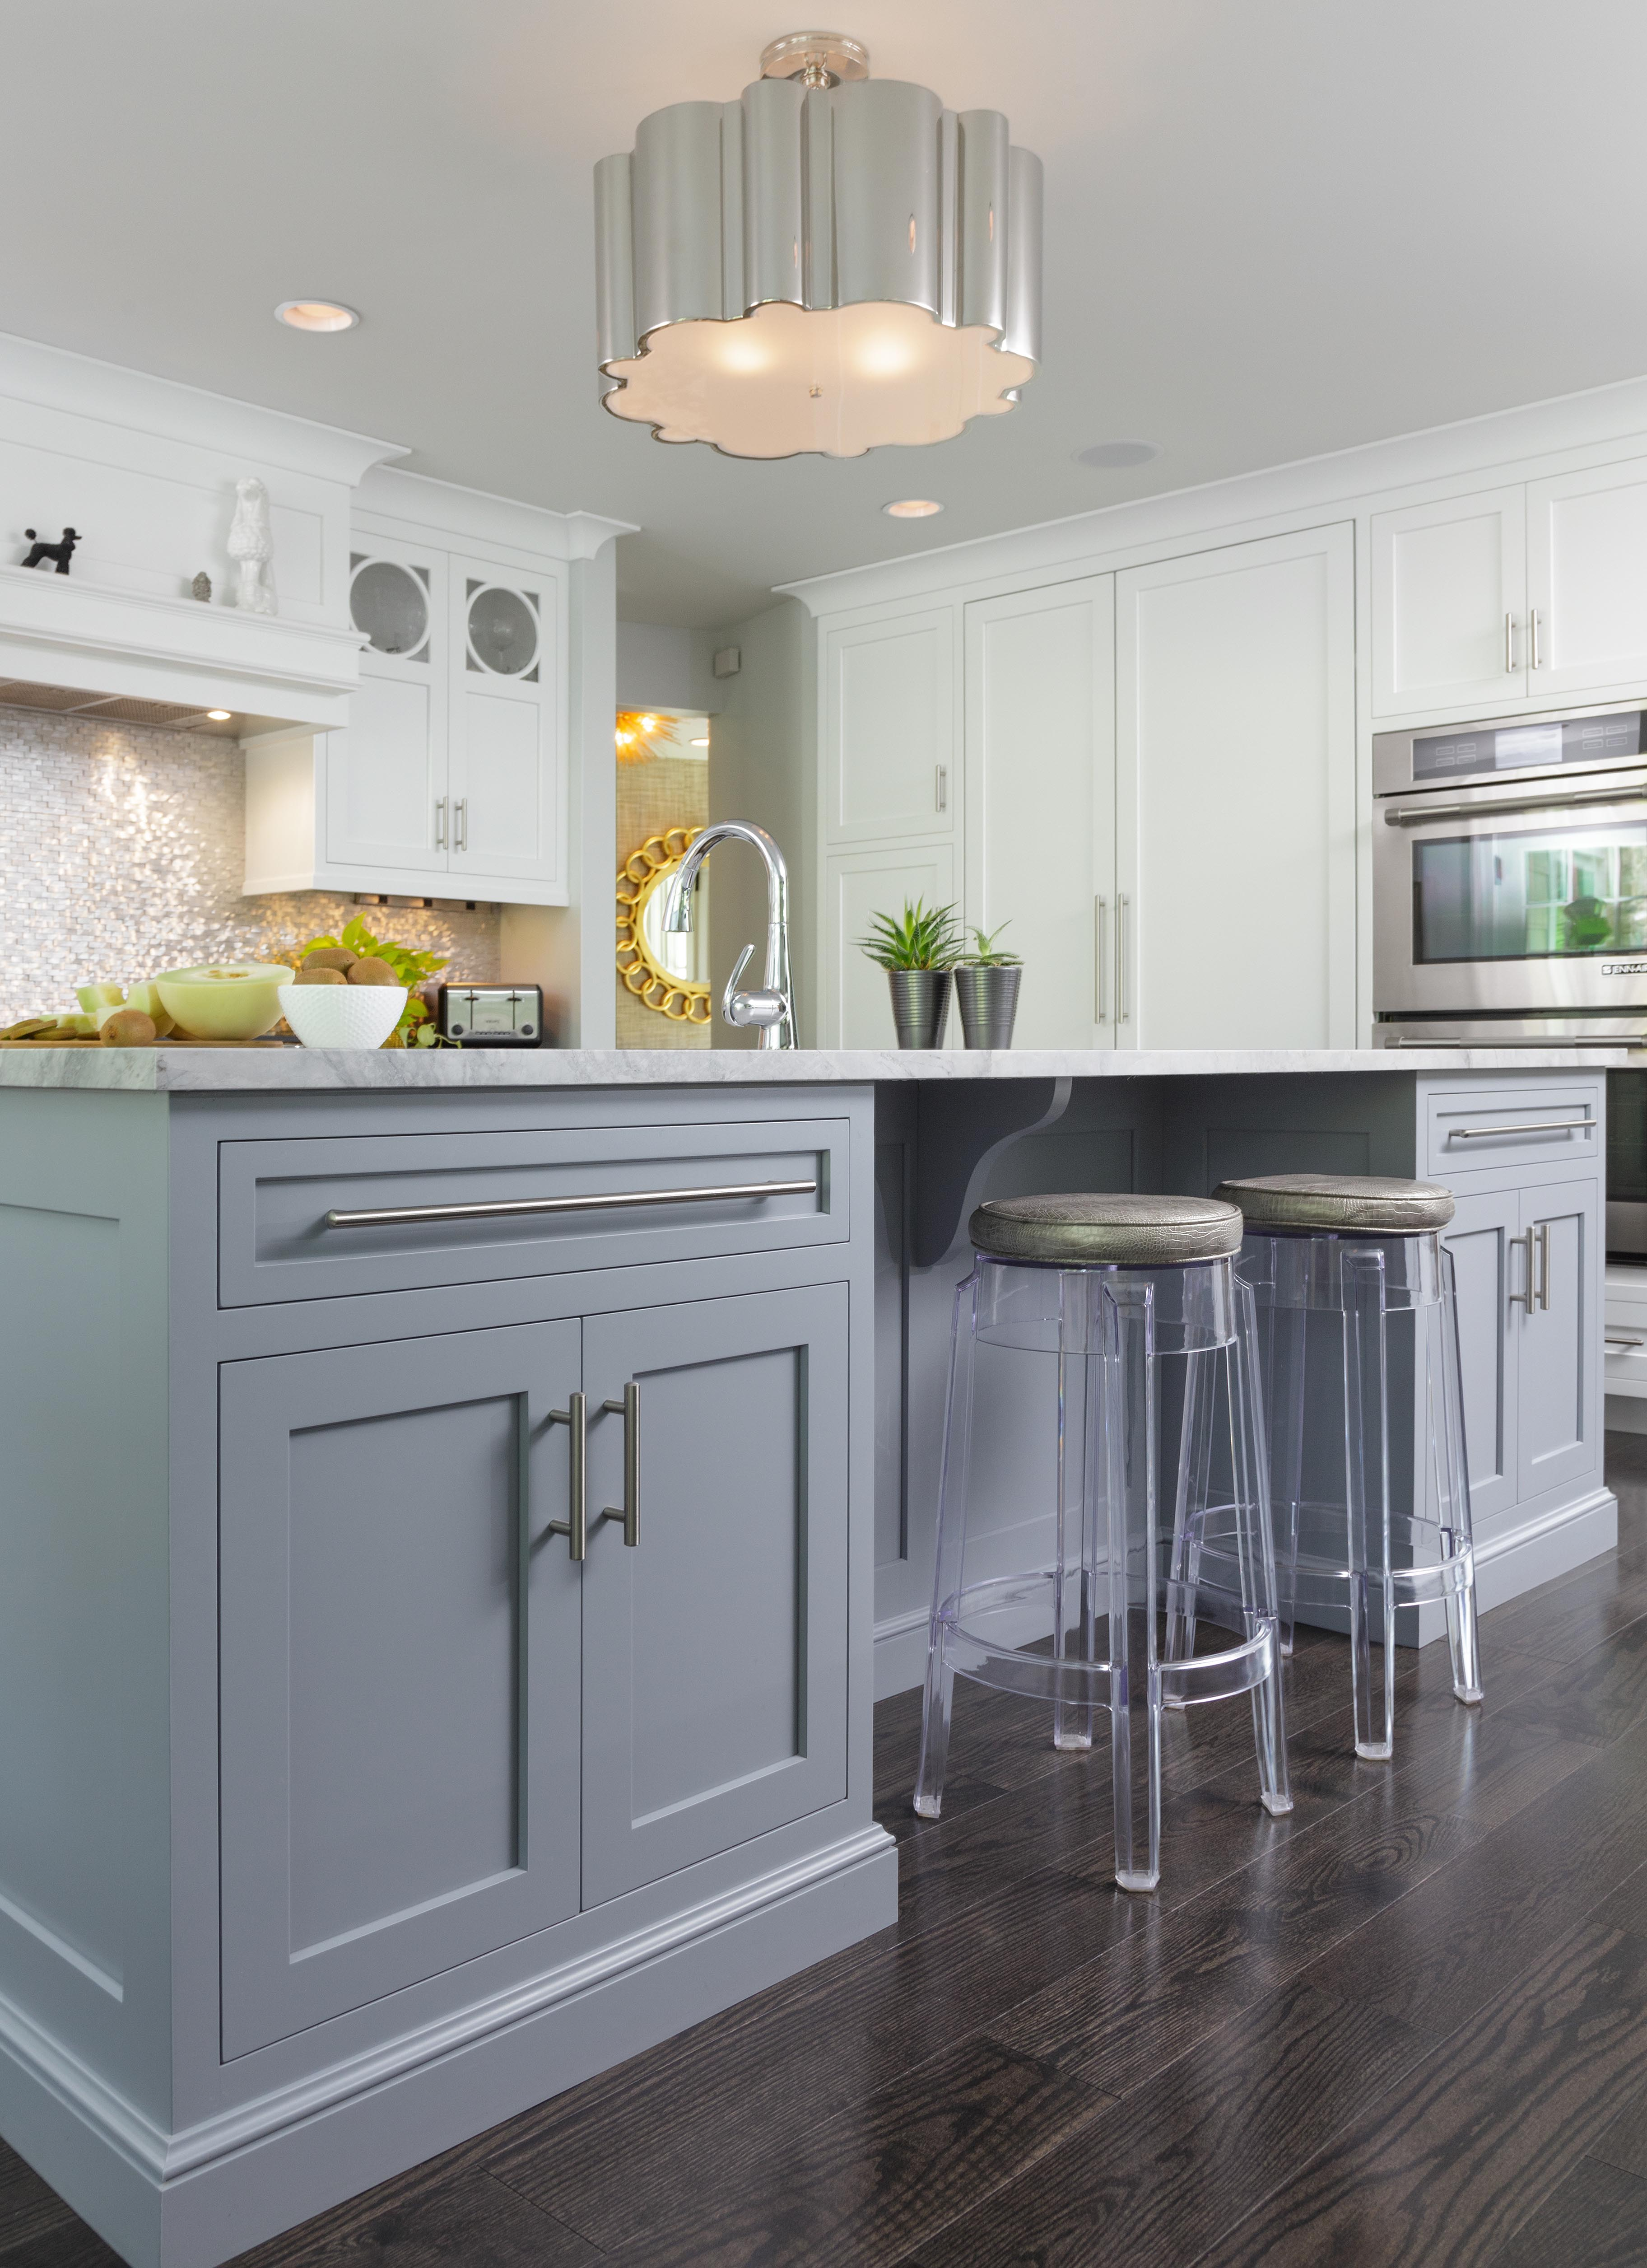 Kitchen designers in maryland 28 images kitchen design custom kitchen cabinets baltimore - Kitchen designers in maryland ...